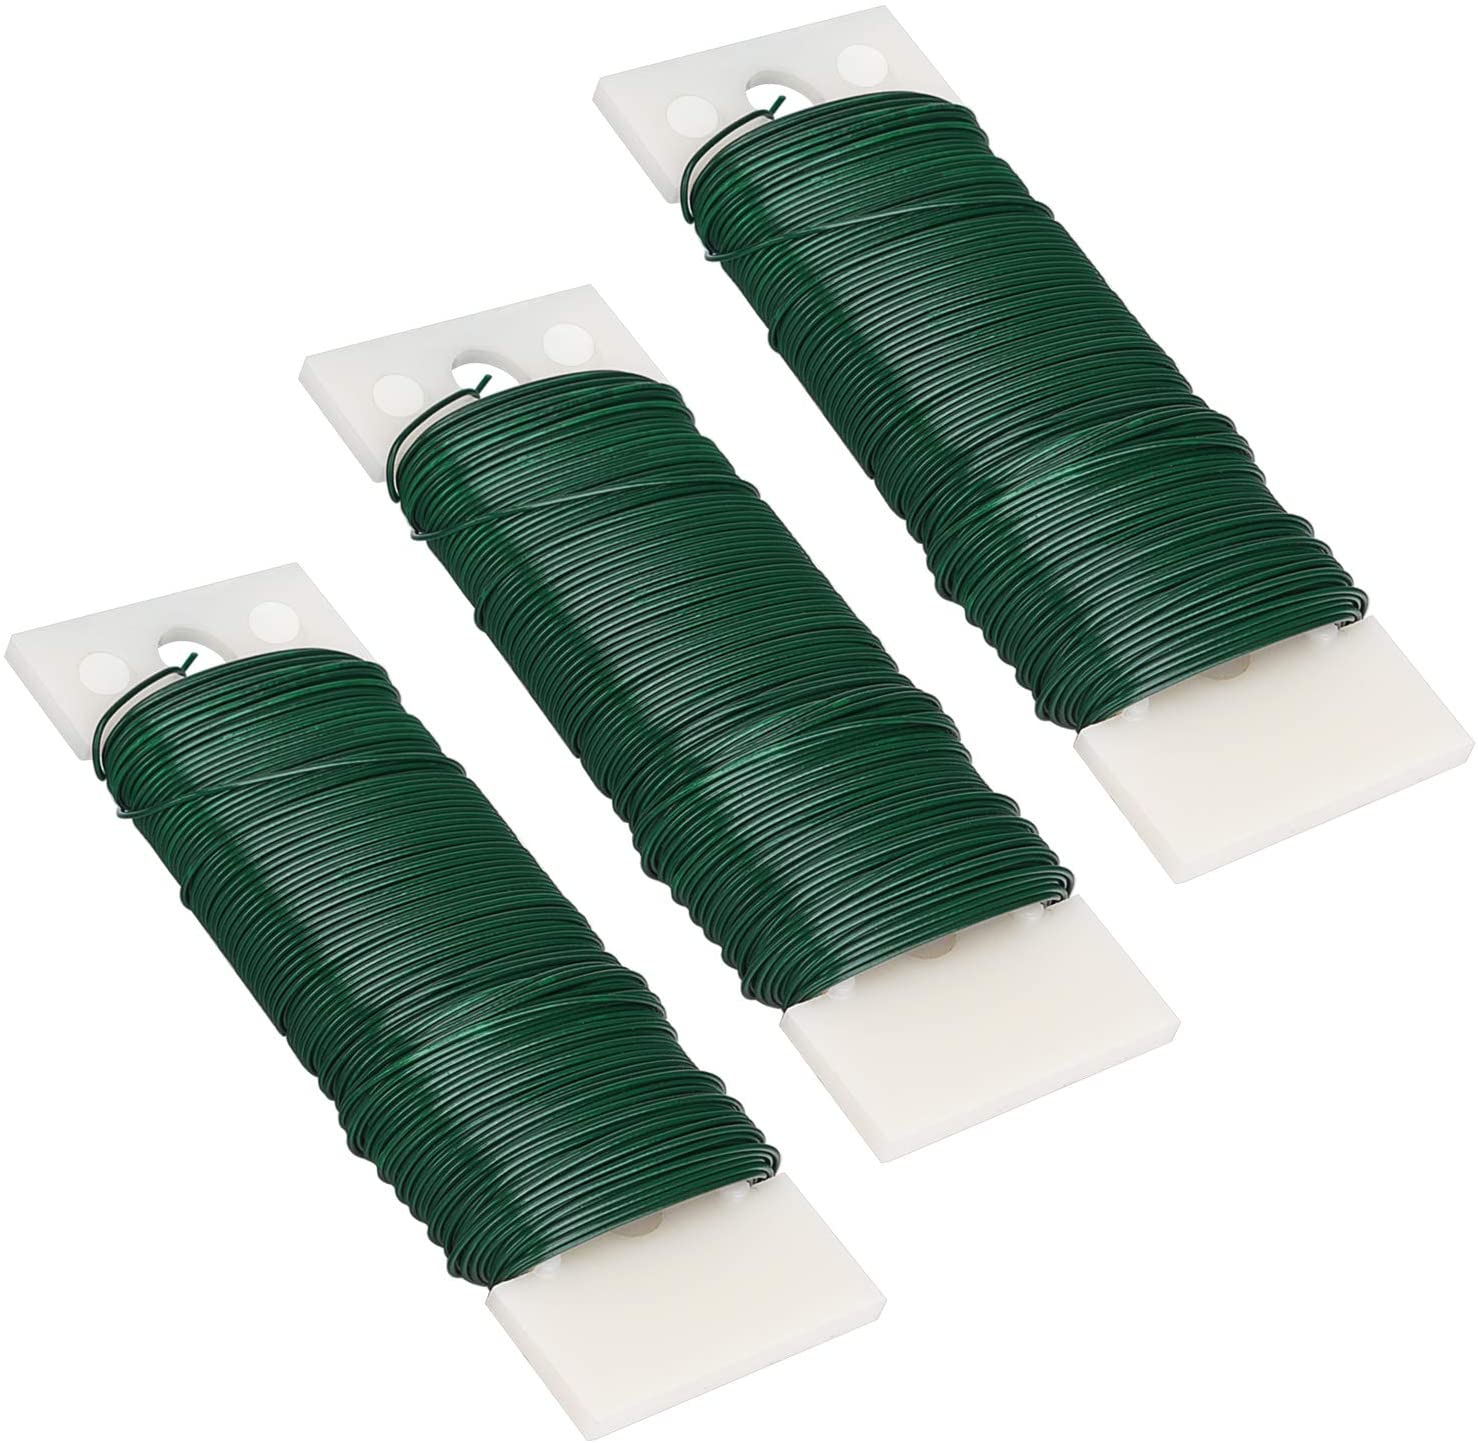 Livder 3 Pack 114 Yards 22 Gauge Green Flexible Paddle Wire for Crafts, Christmas Wreaths Tree, Garland and Floral Flower Arrangements